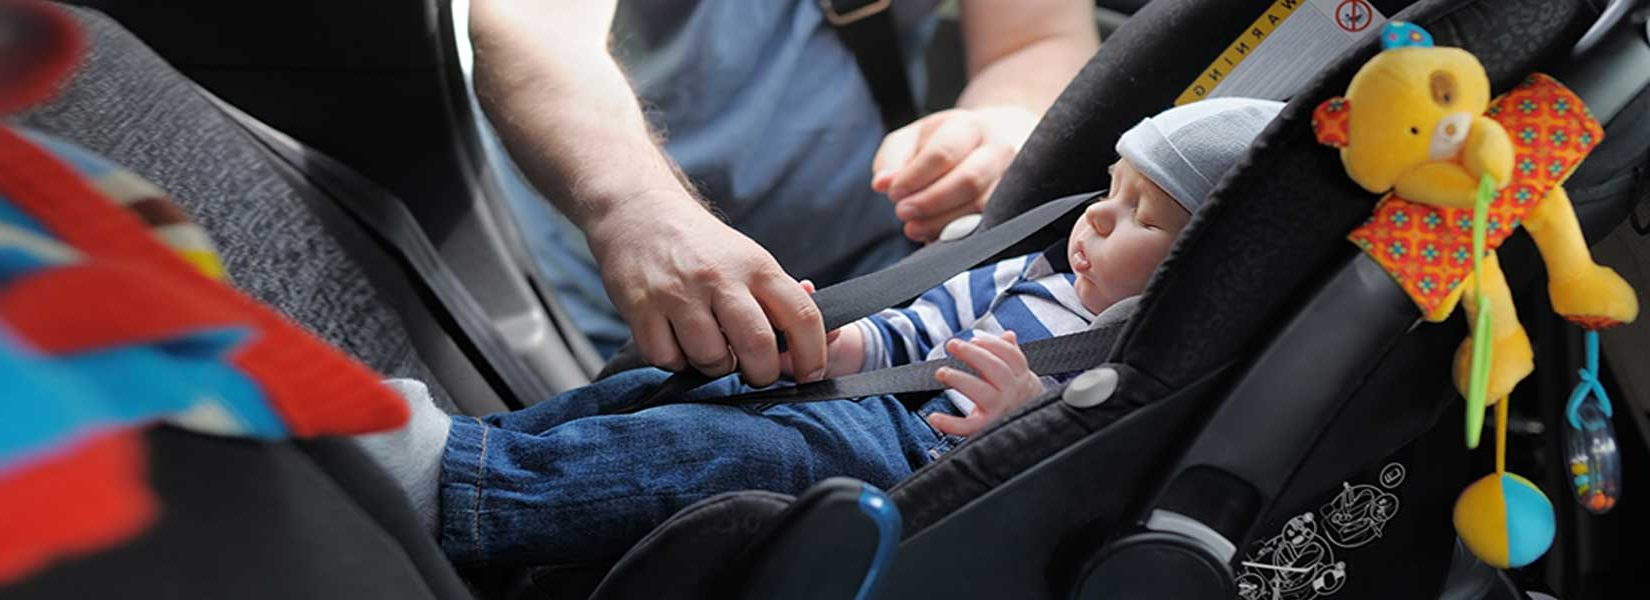 Child Fatalities in Car Accidents